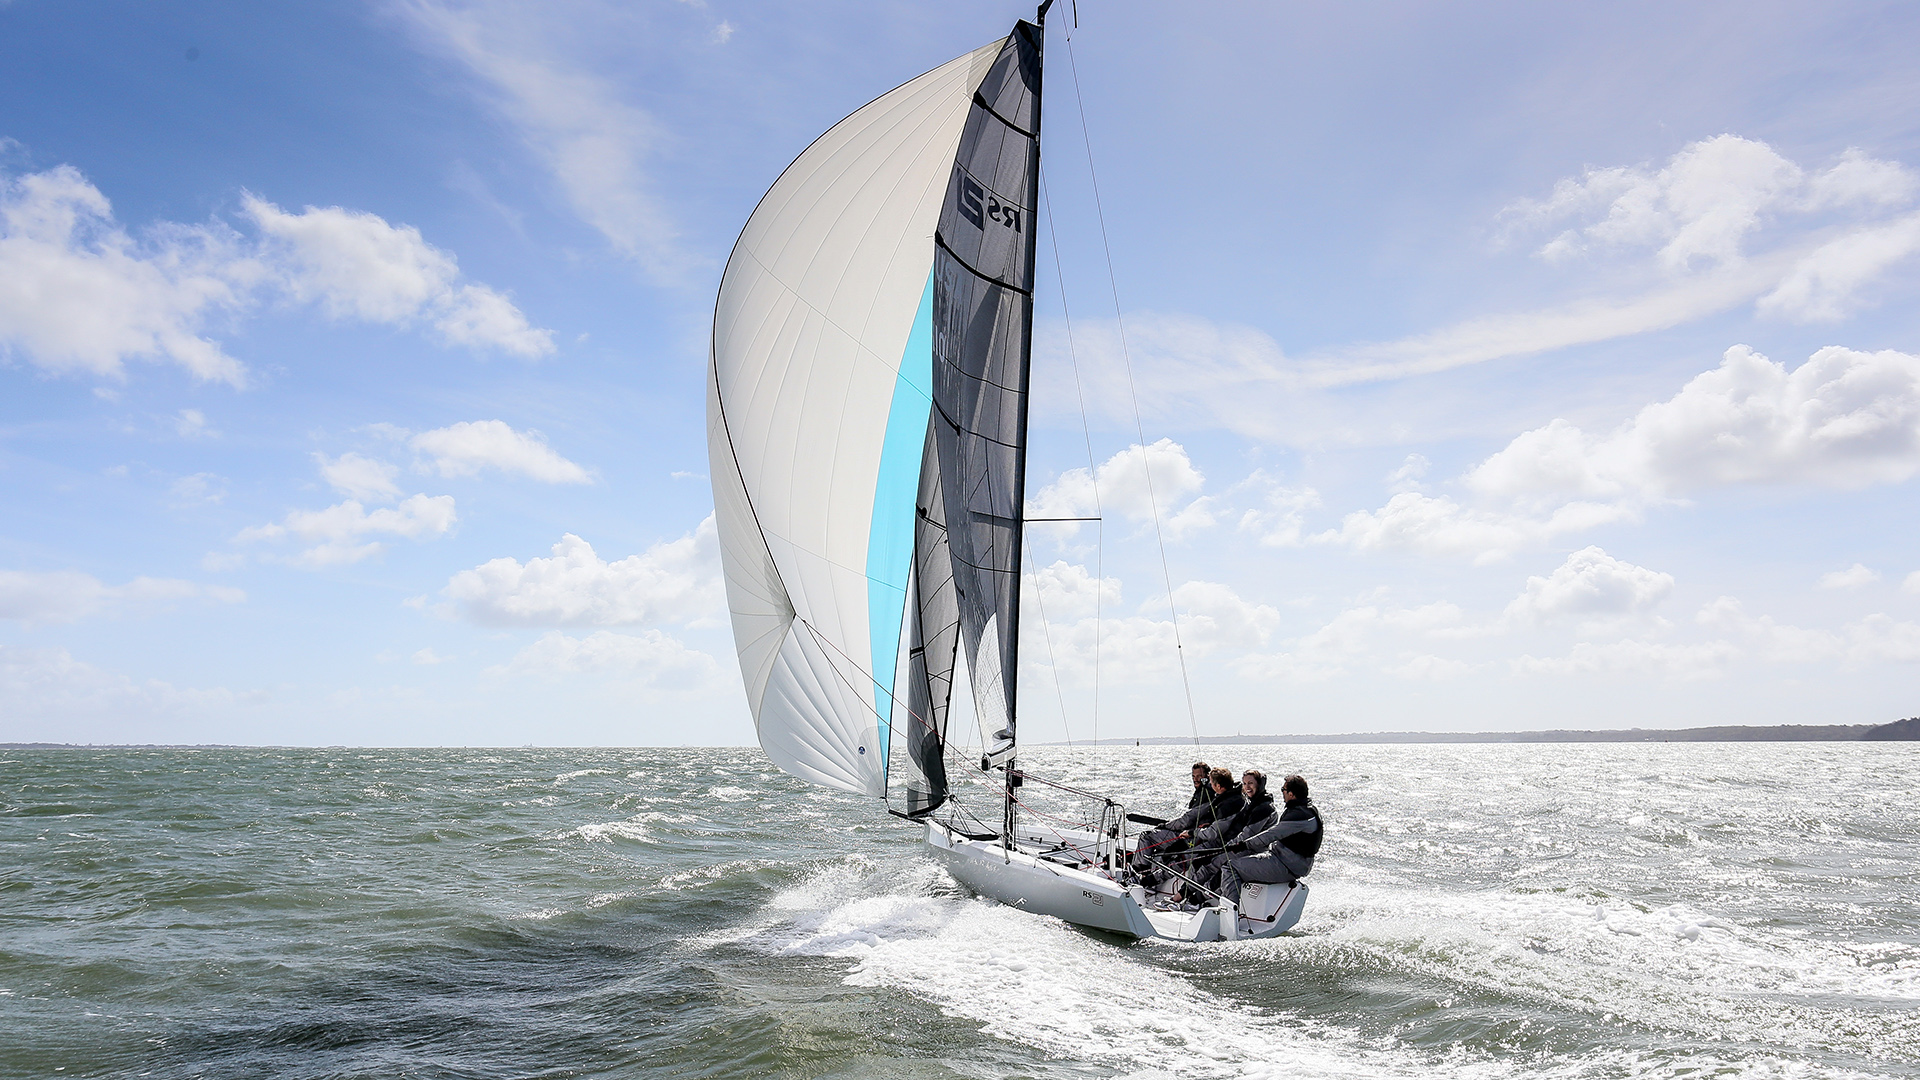 progressive keelboat solution for club programs and sailor